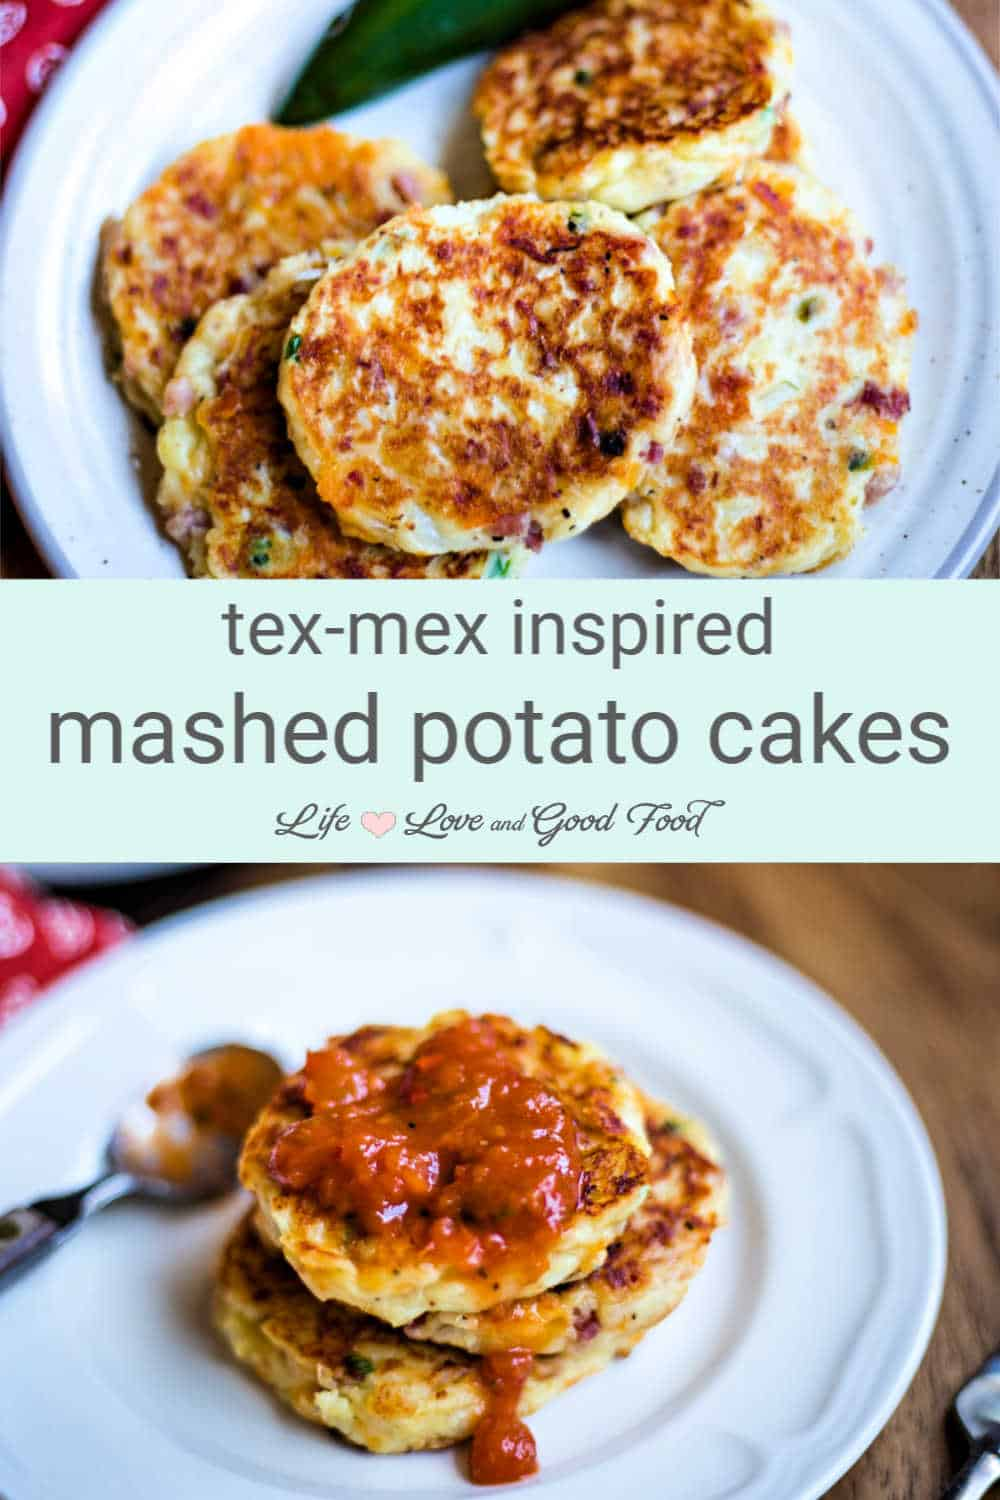 Mashed Potato Cakes loaded with spicy jalapeño peppers, onions, diced ham, and cheese transform leftover mashed potatoes into an amazing side dish. Fried until they're golden brown and crispy, serve these Tex-Mex inspired potato cakes topped with fresh tomato salsa or sour cream.